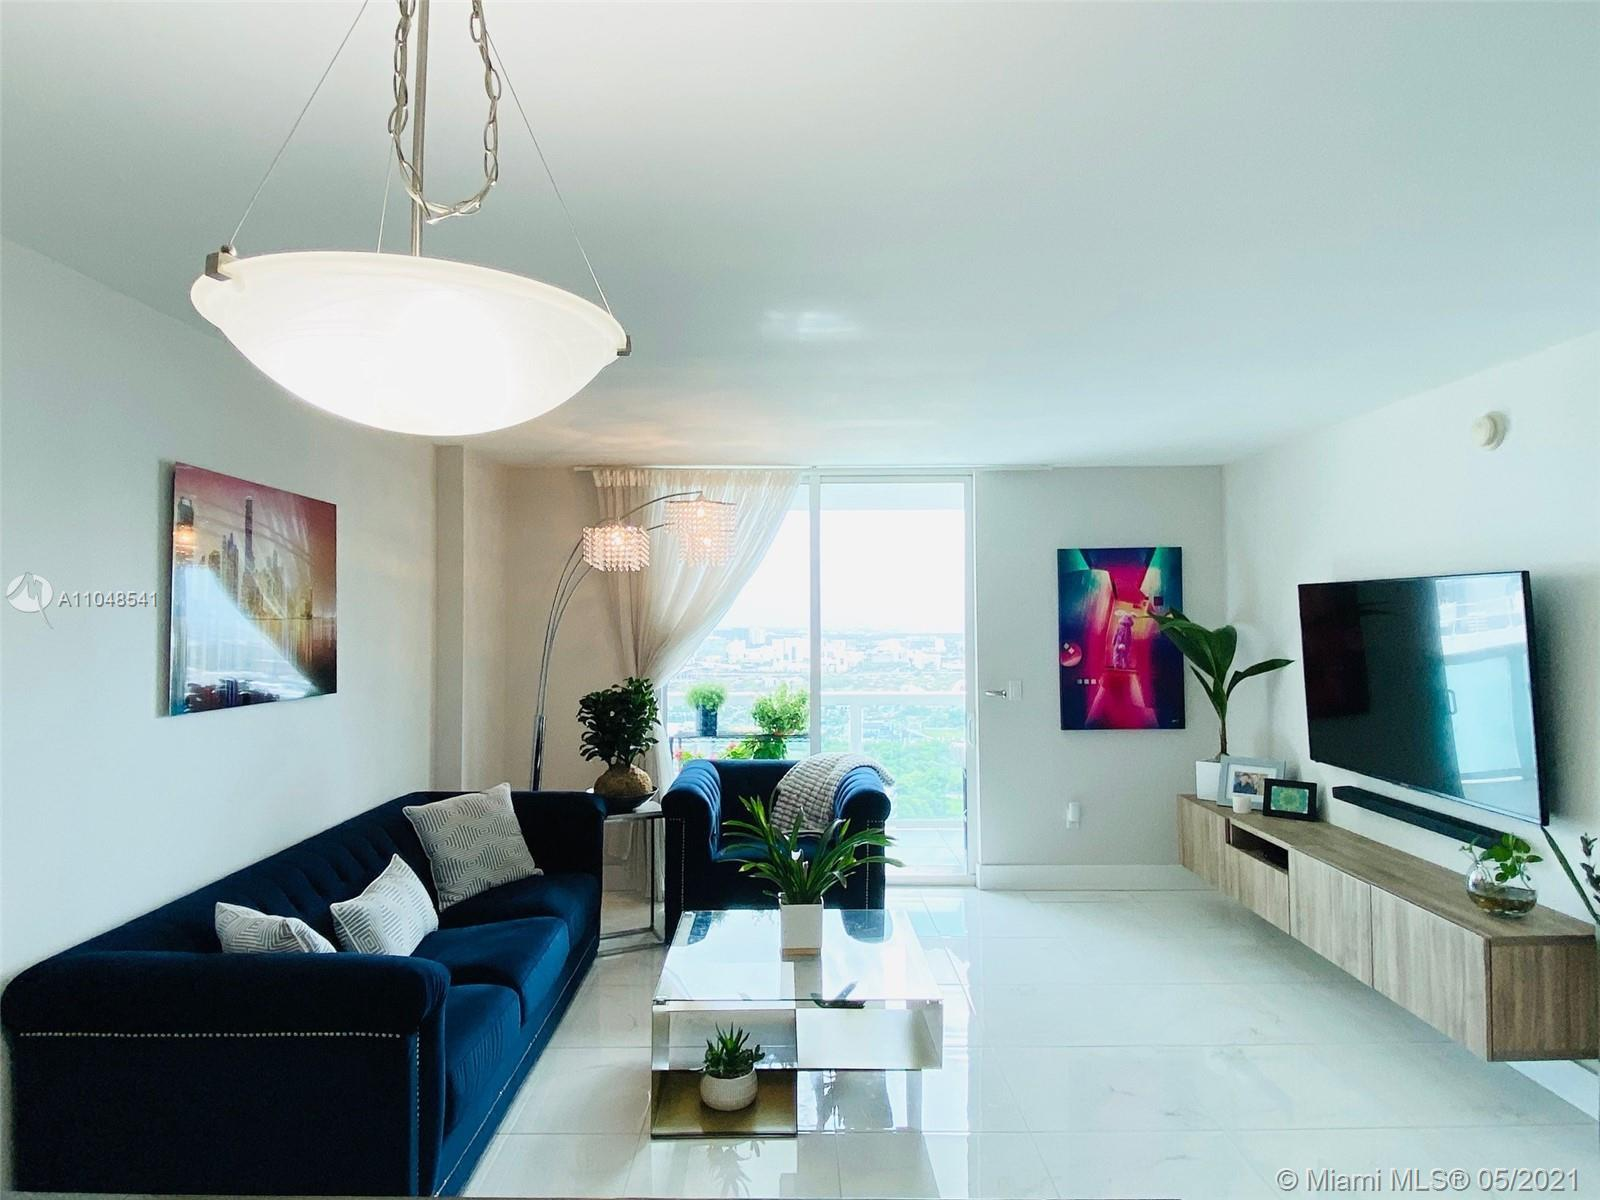 BUY WITH AS LITTLE AS 5% DOWN FOR THOSE WHO QUALIFY! BEAUTIFUL UNFURNISHED UNIT IN EAST EDGEWATER AT